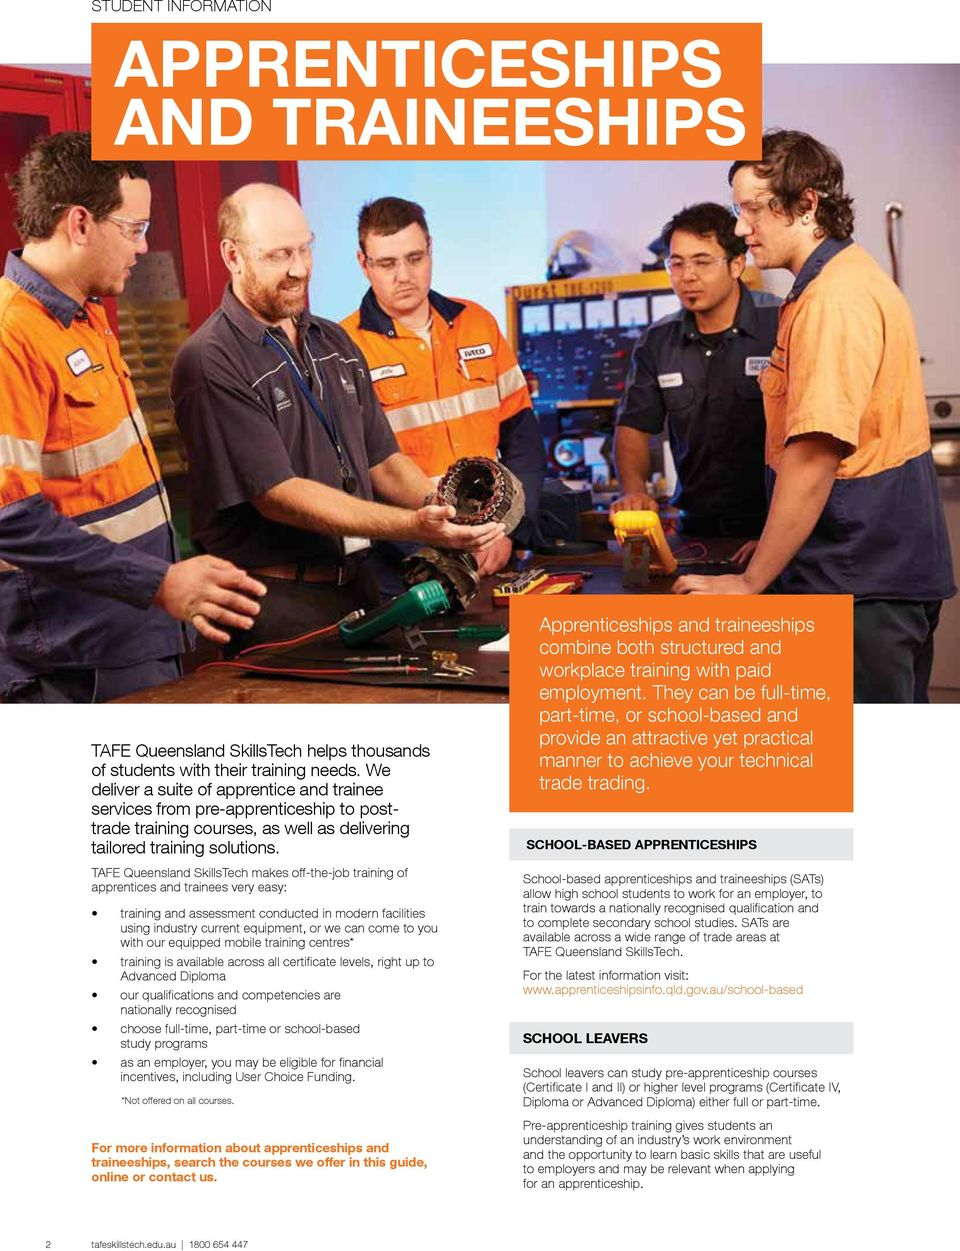 TAFE QUEENSLAND SKILLSTECH 2016 COURSE GUIDE JOB-FOCUSED